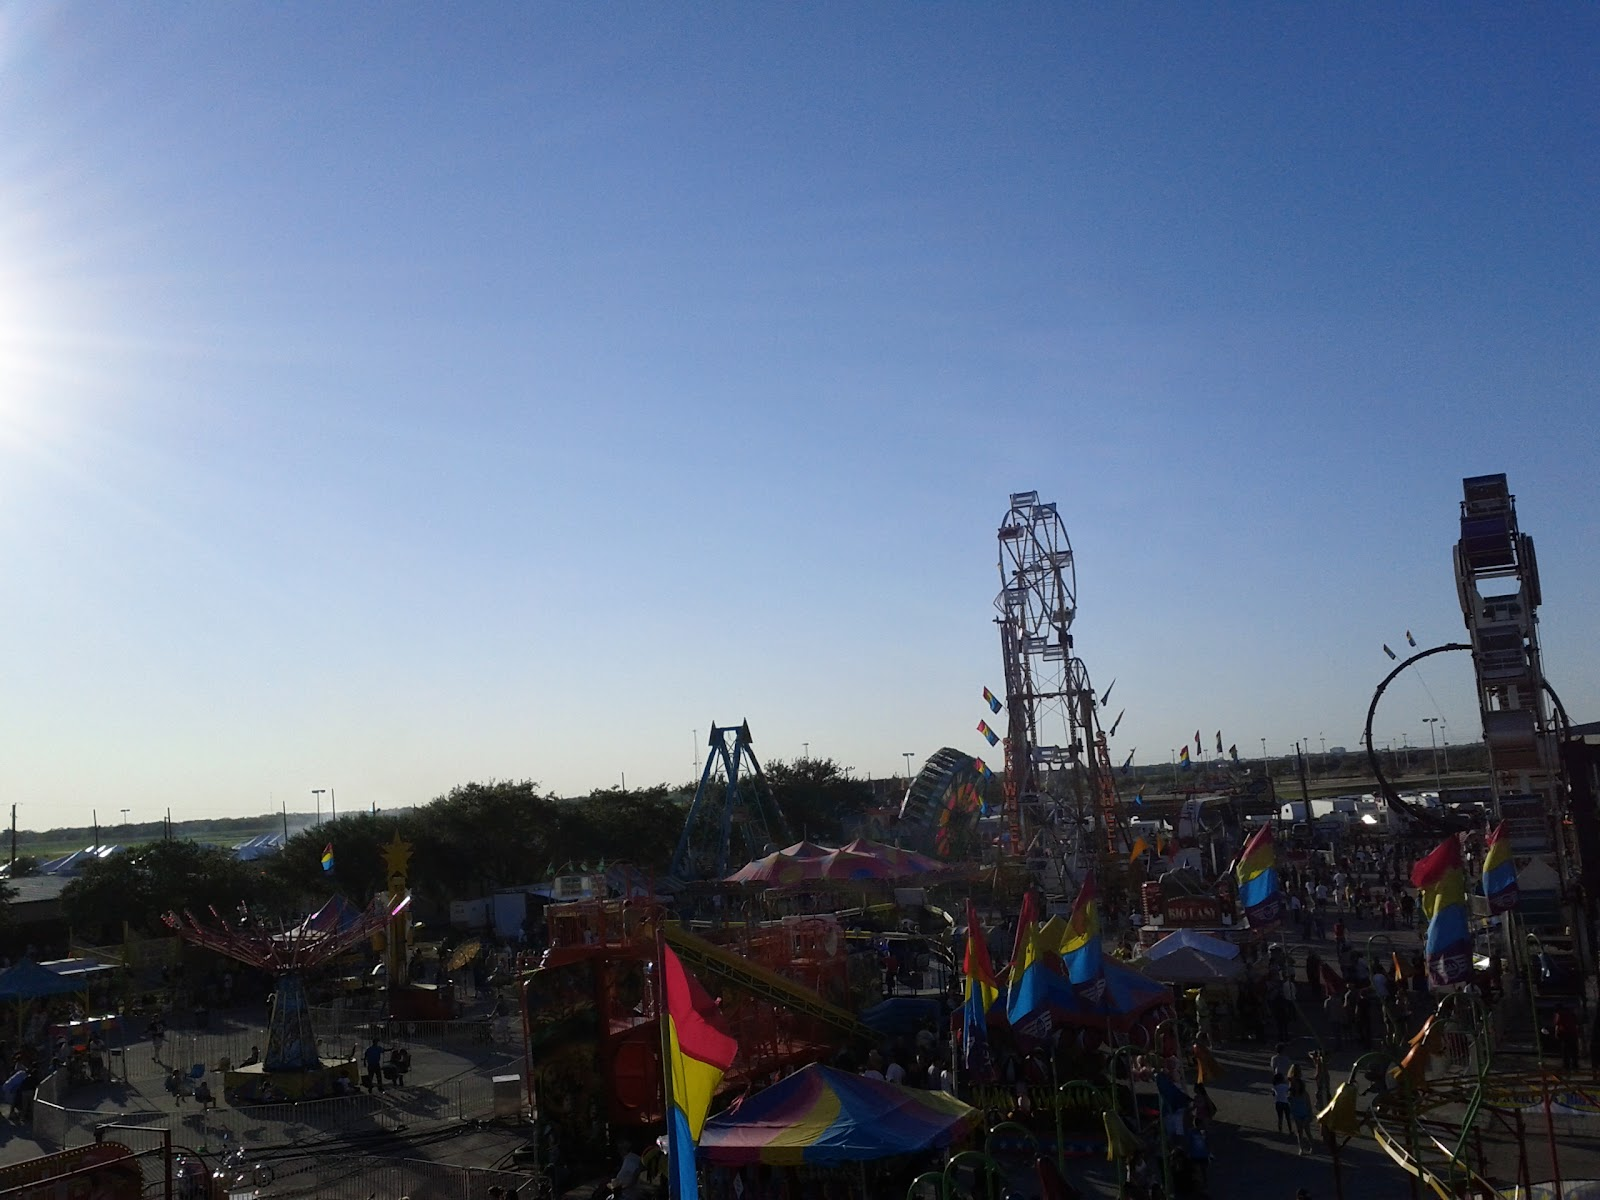 Fort Bend County Fair 2011 - IMG_20111001_174731.jpg